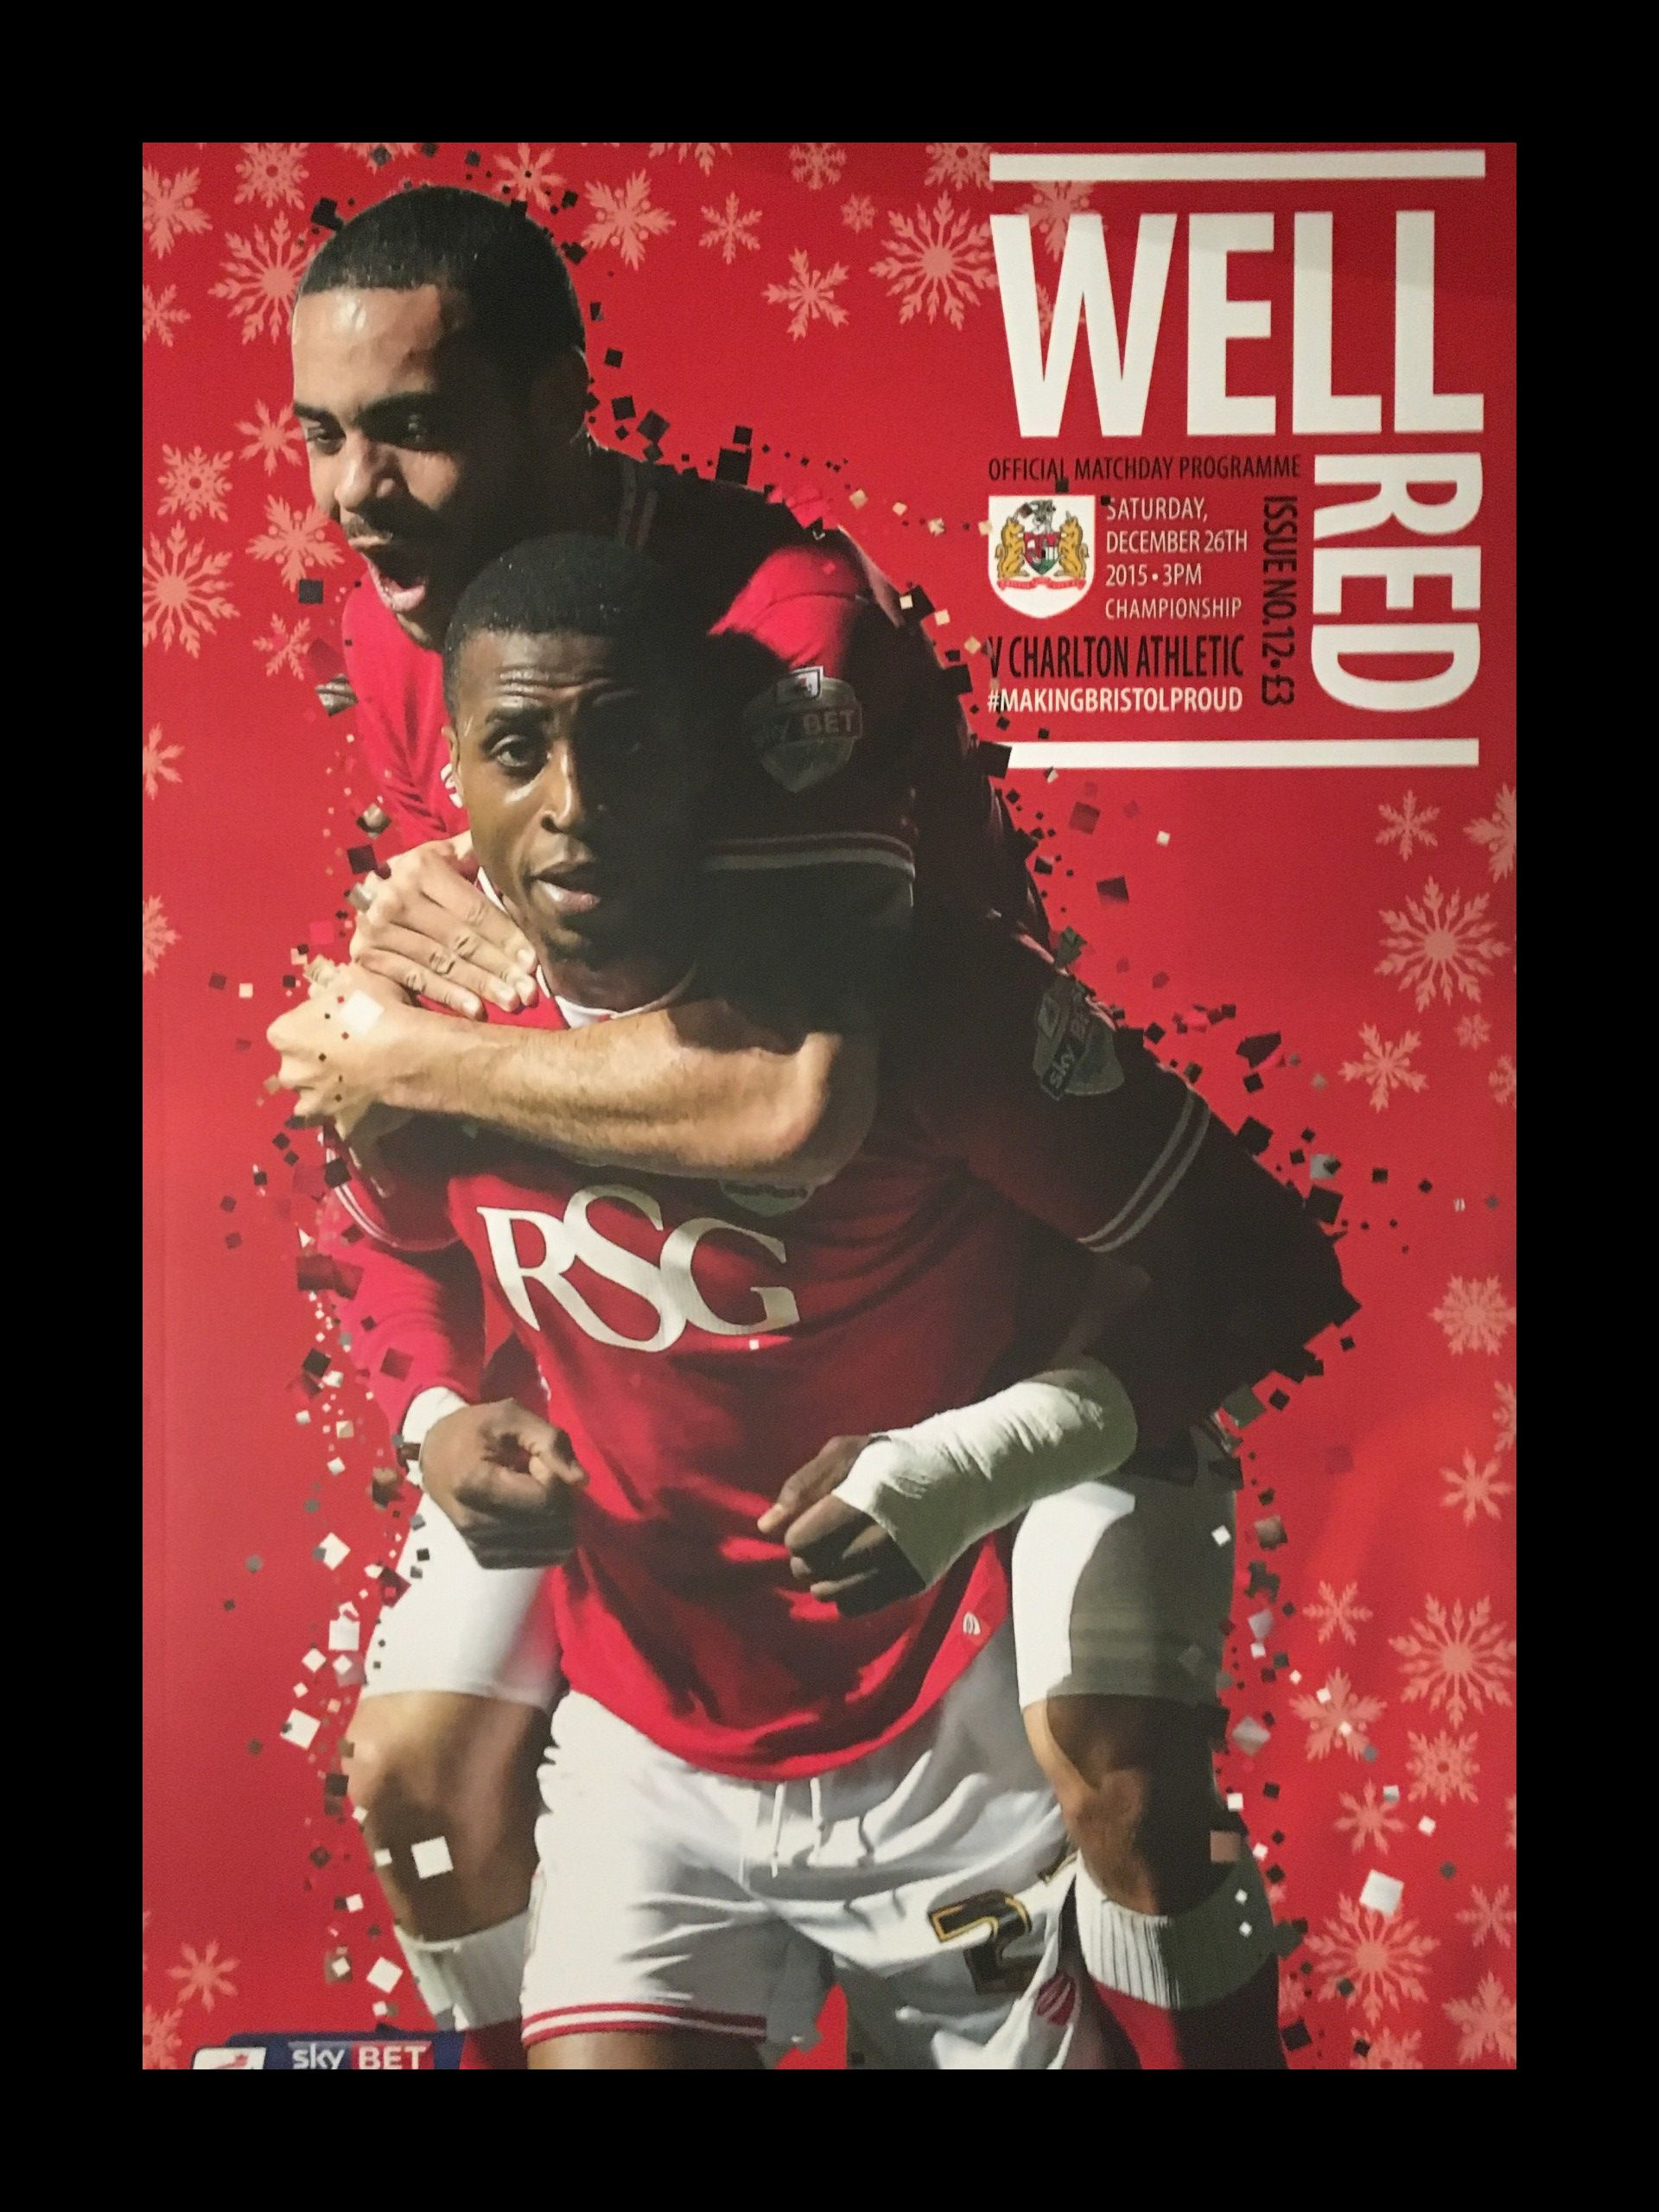 Bristol City v Charlton Athletic 26-12-2015 Programme